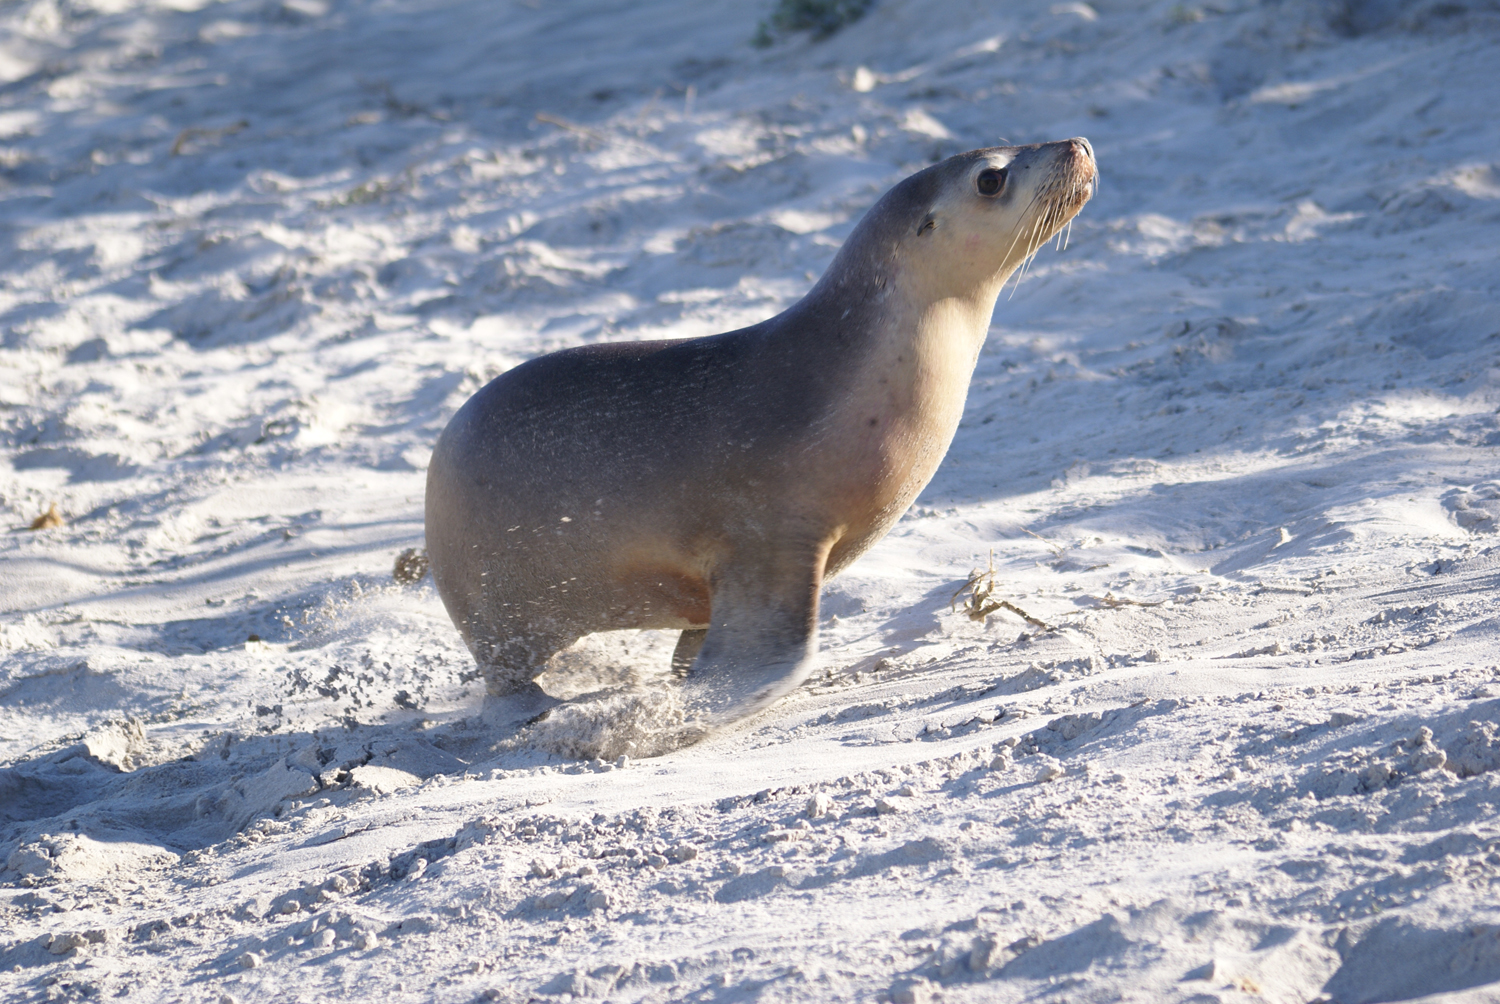 Sea lion at Seal Bay